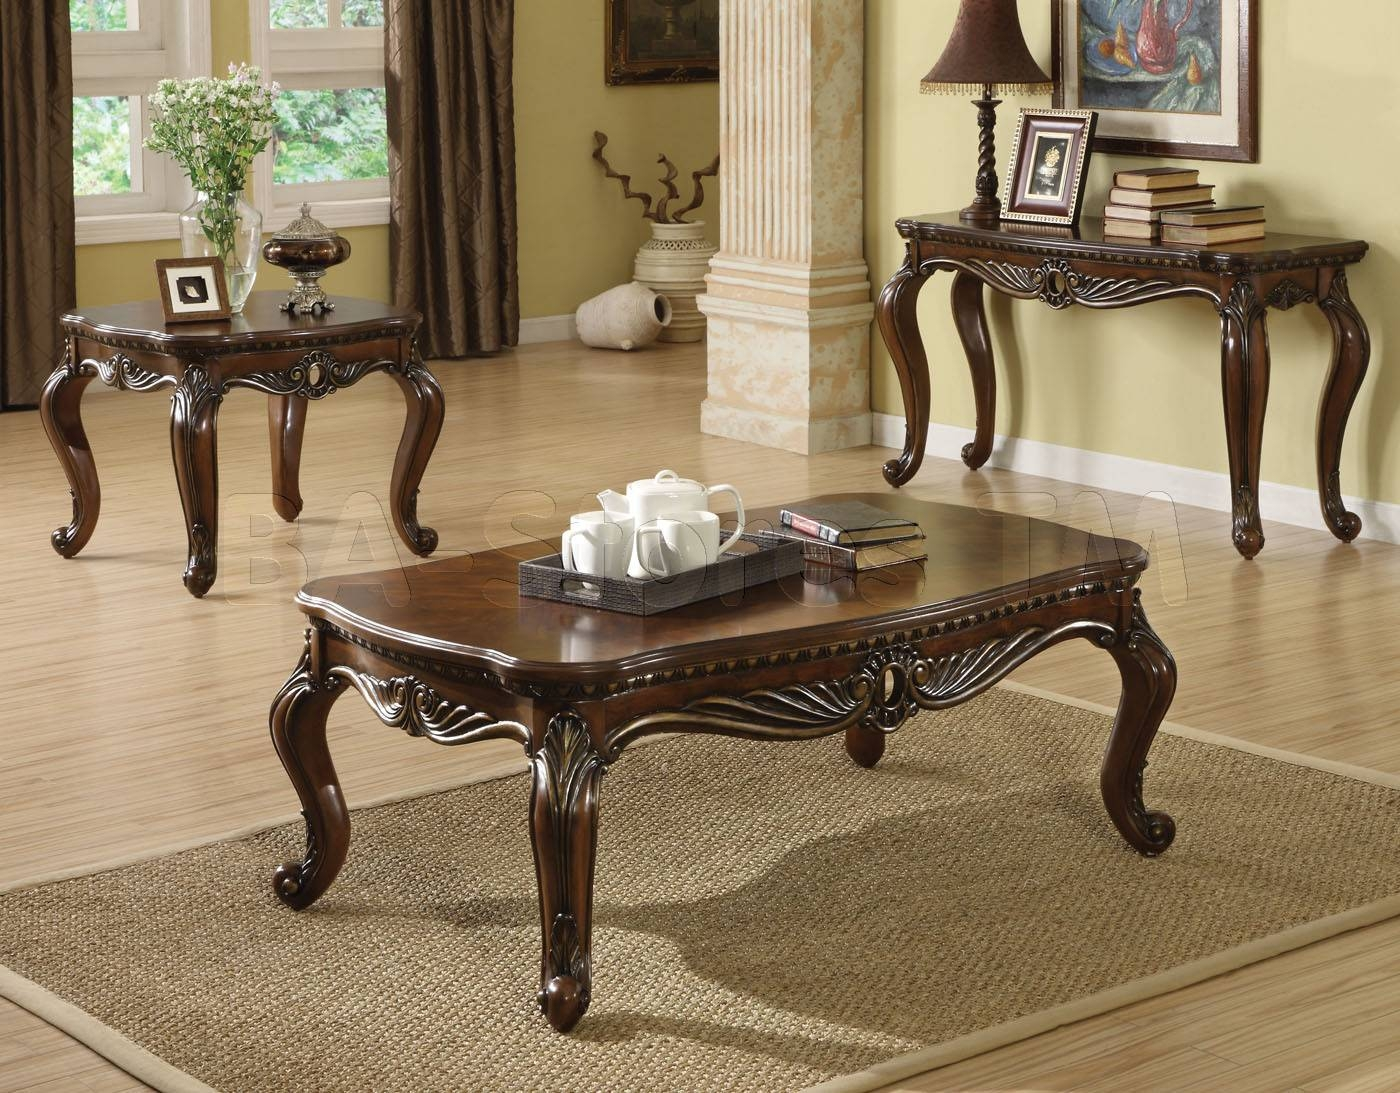 Cherry Wood Coffee Table And End Tables | Coffee Tables Decoration for Cherry Wood Coffee Table Sets (Image 9 of 30)